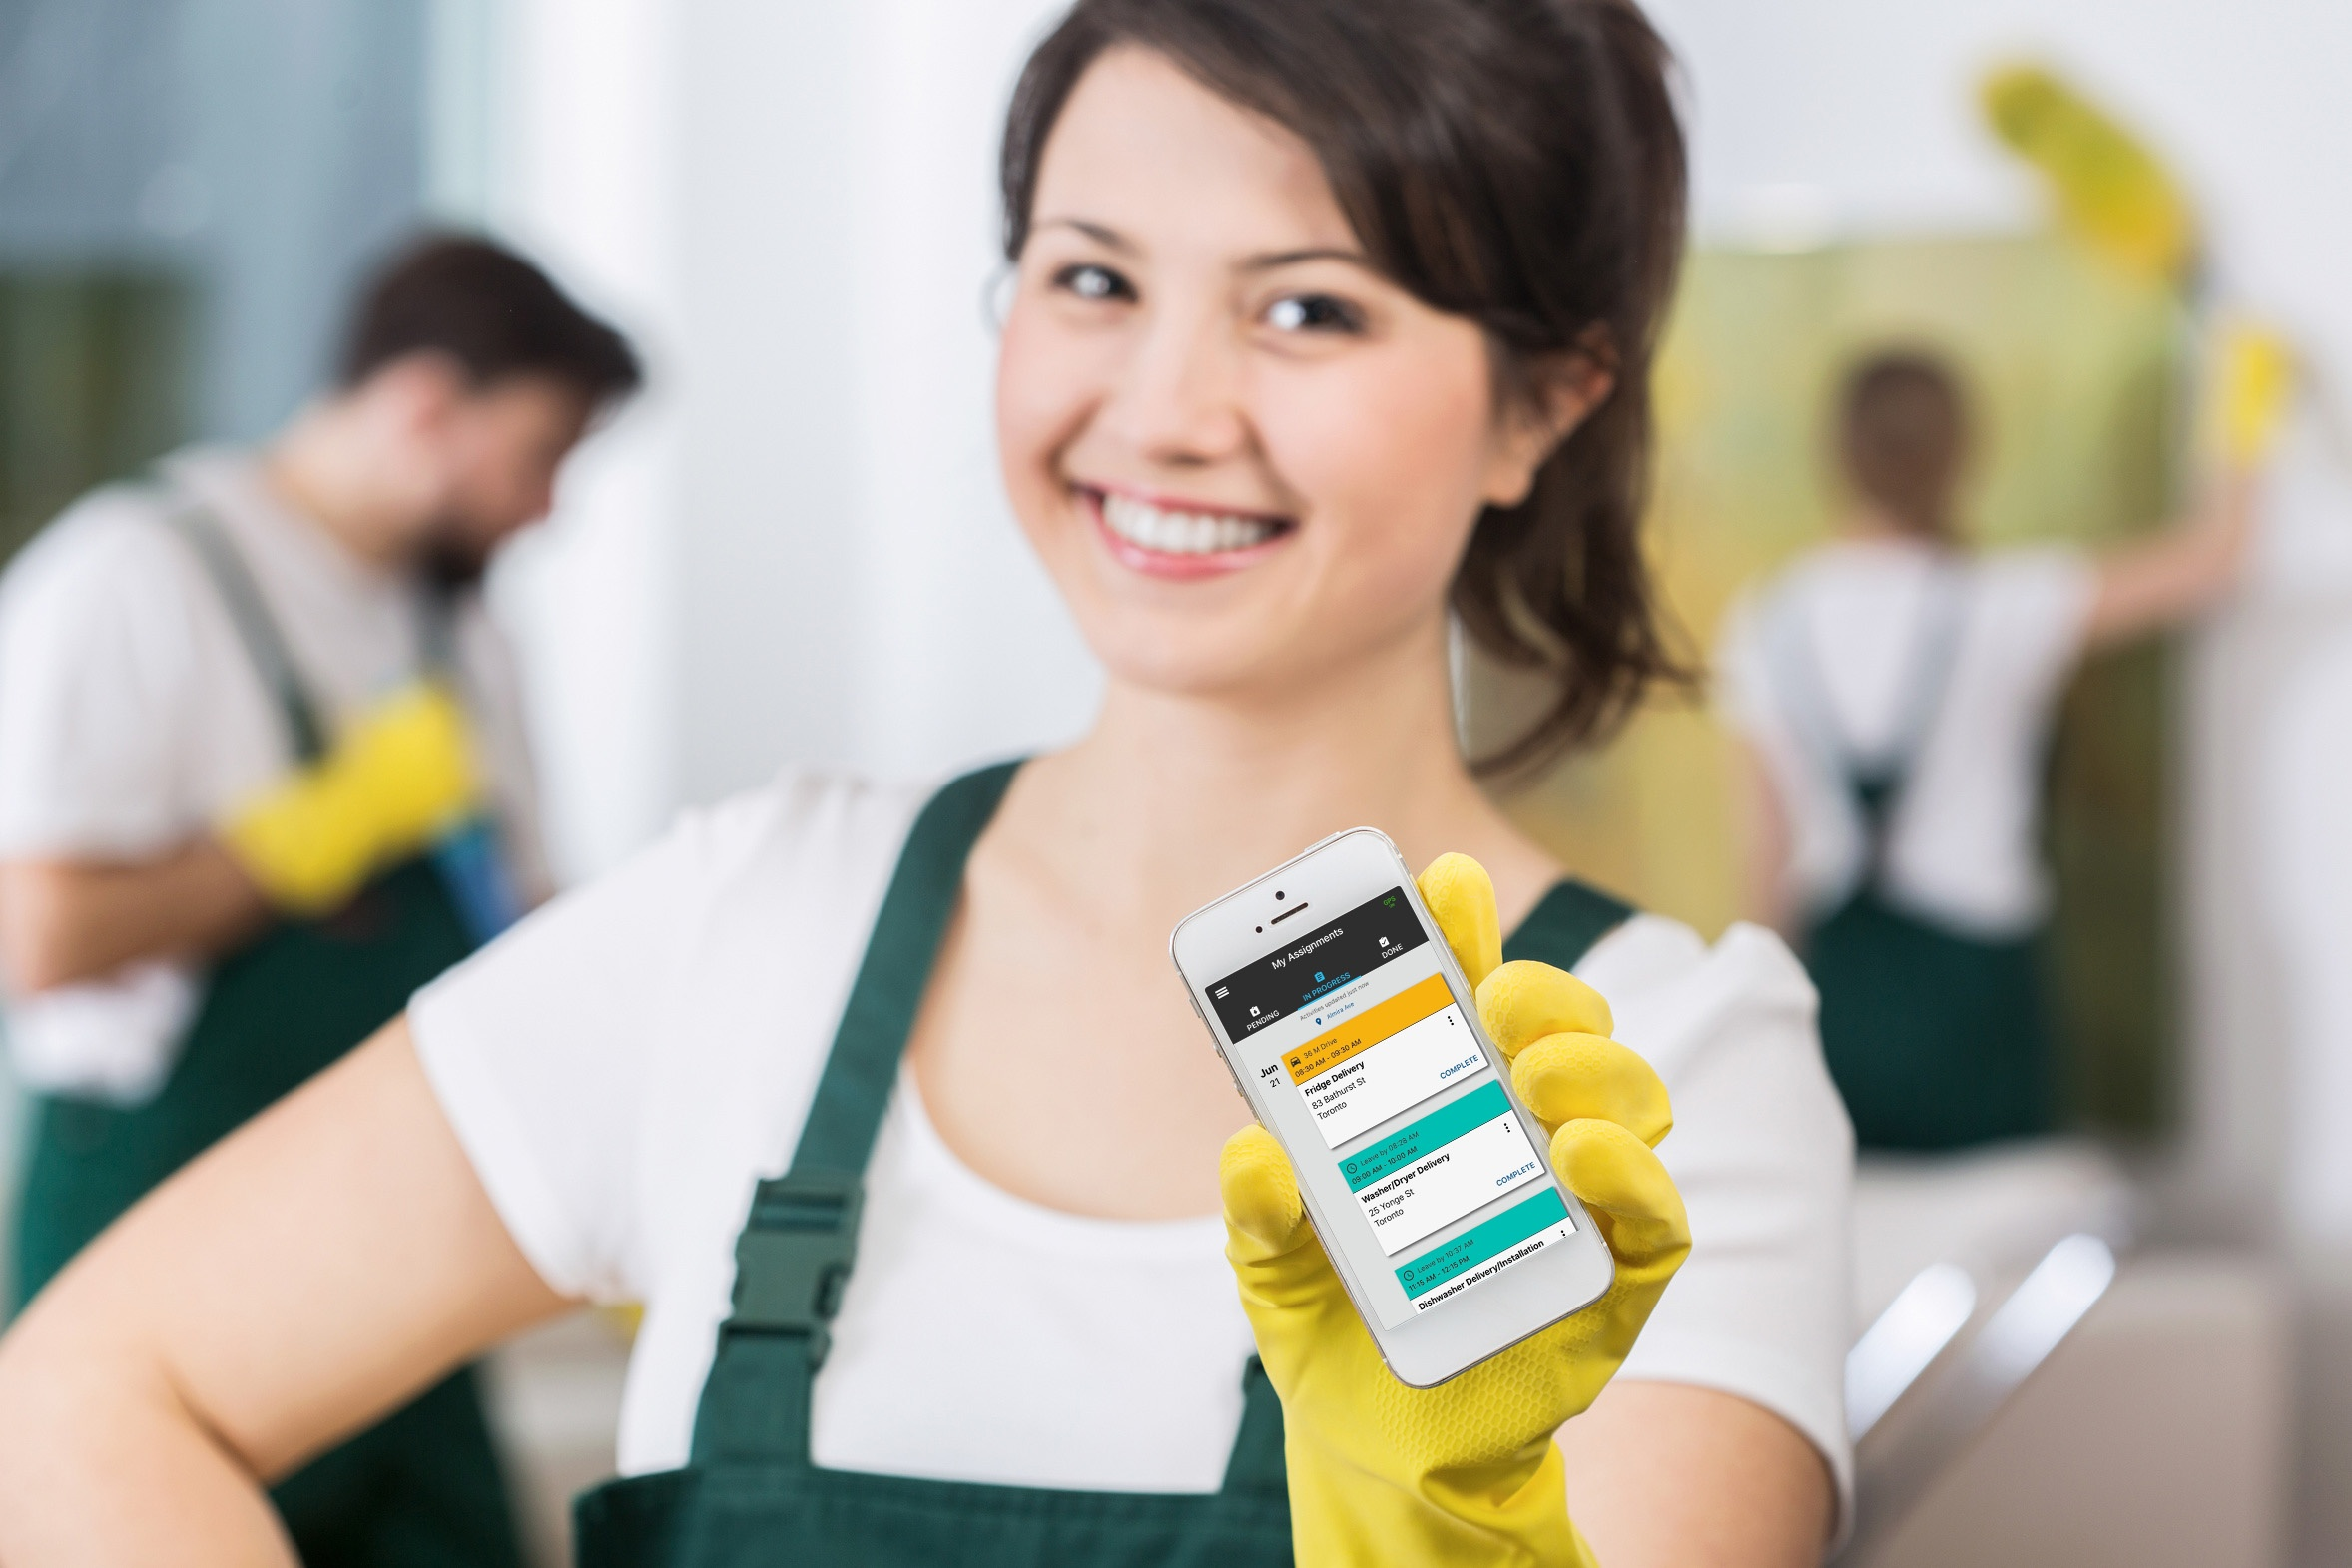 Young woman worker wearing yellow rubber gloves and holding a smartphone with Task Tracker app on the screen.